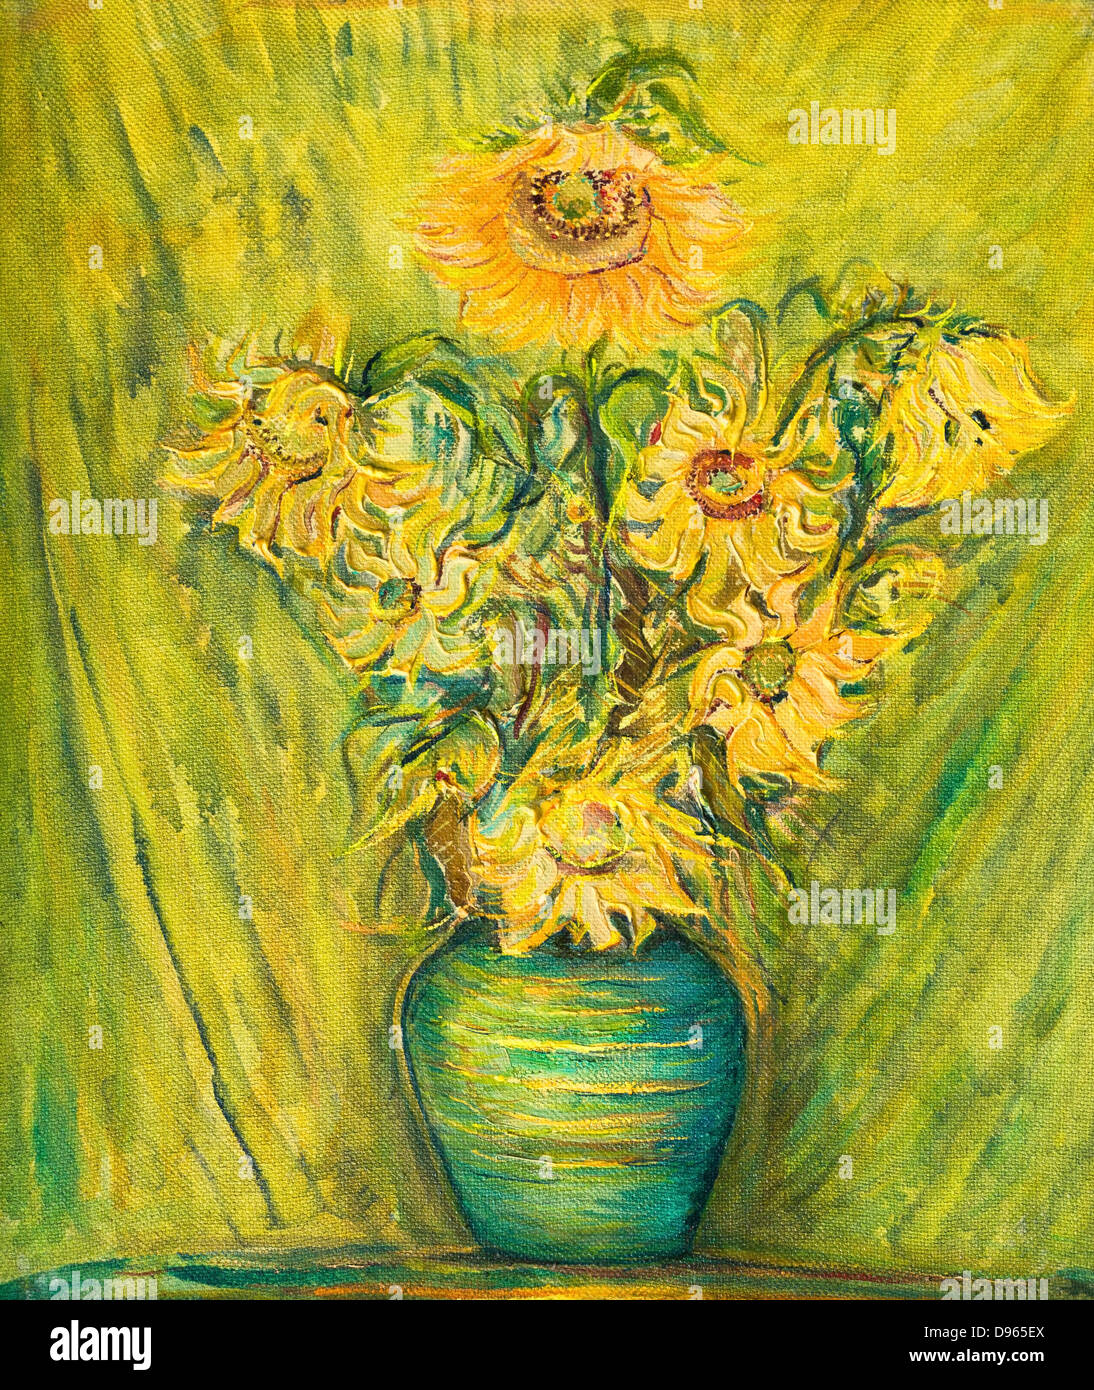 Vase Of Flowers Painting Stock Photos & Vase Of Flowers Painting ...